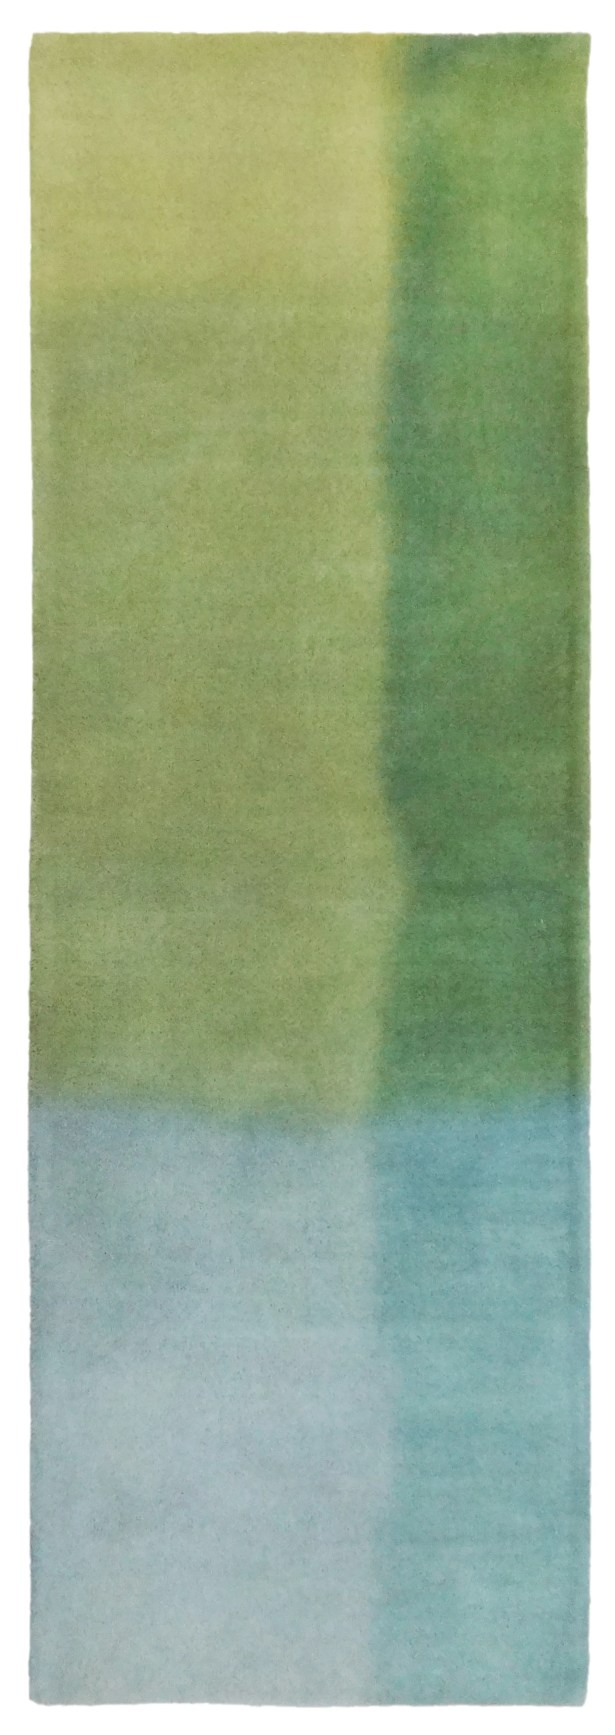 Mullican Hand-Tufted Green Area Rug Rug Size: Rectangle 3'6